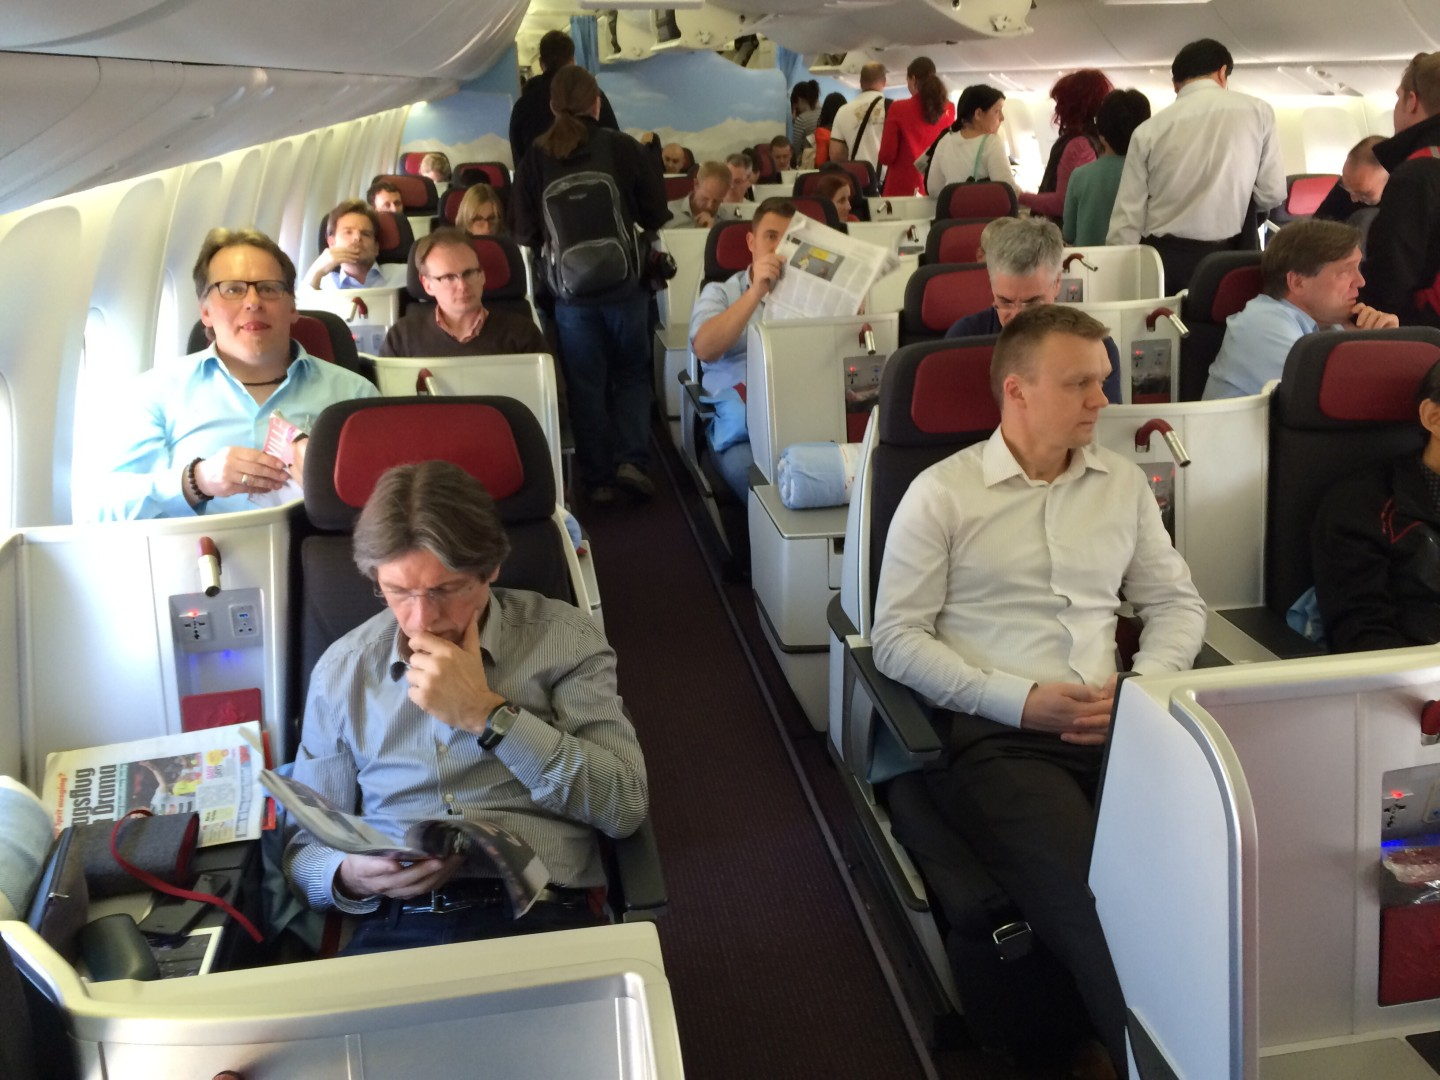 Family Friendly Travel May Get a Boost, and Why Your Middle Seatmate Is Usually Chinese